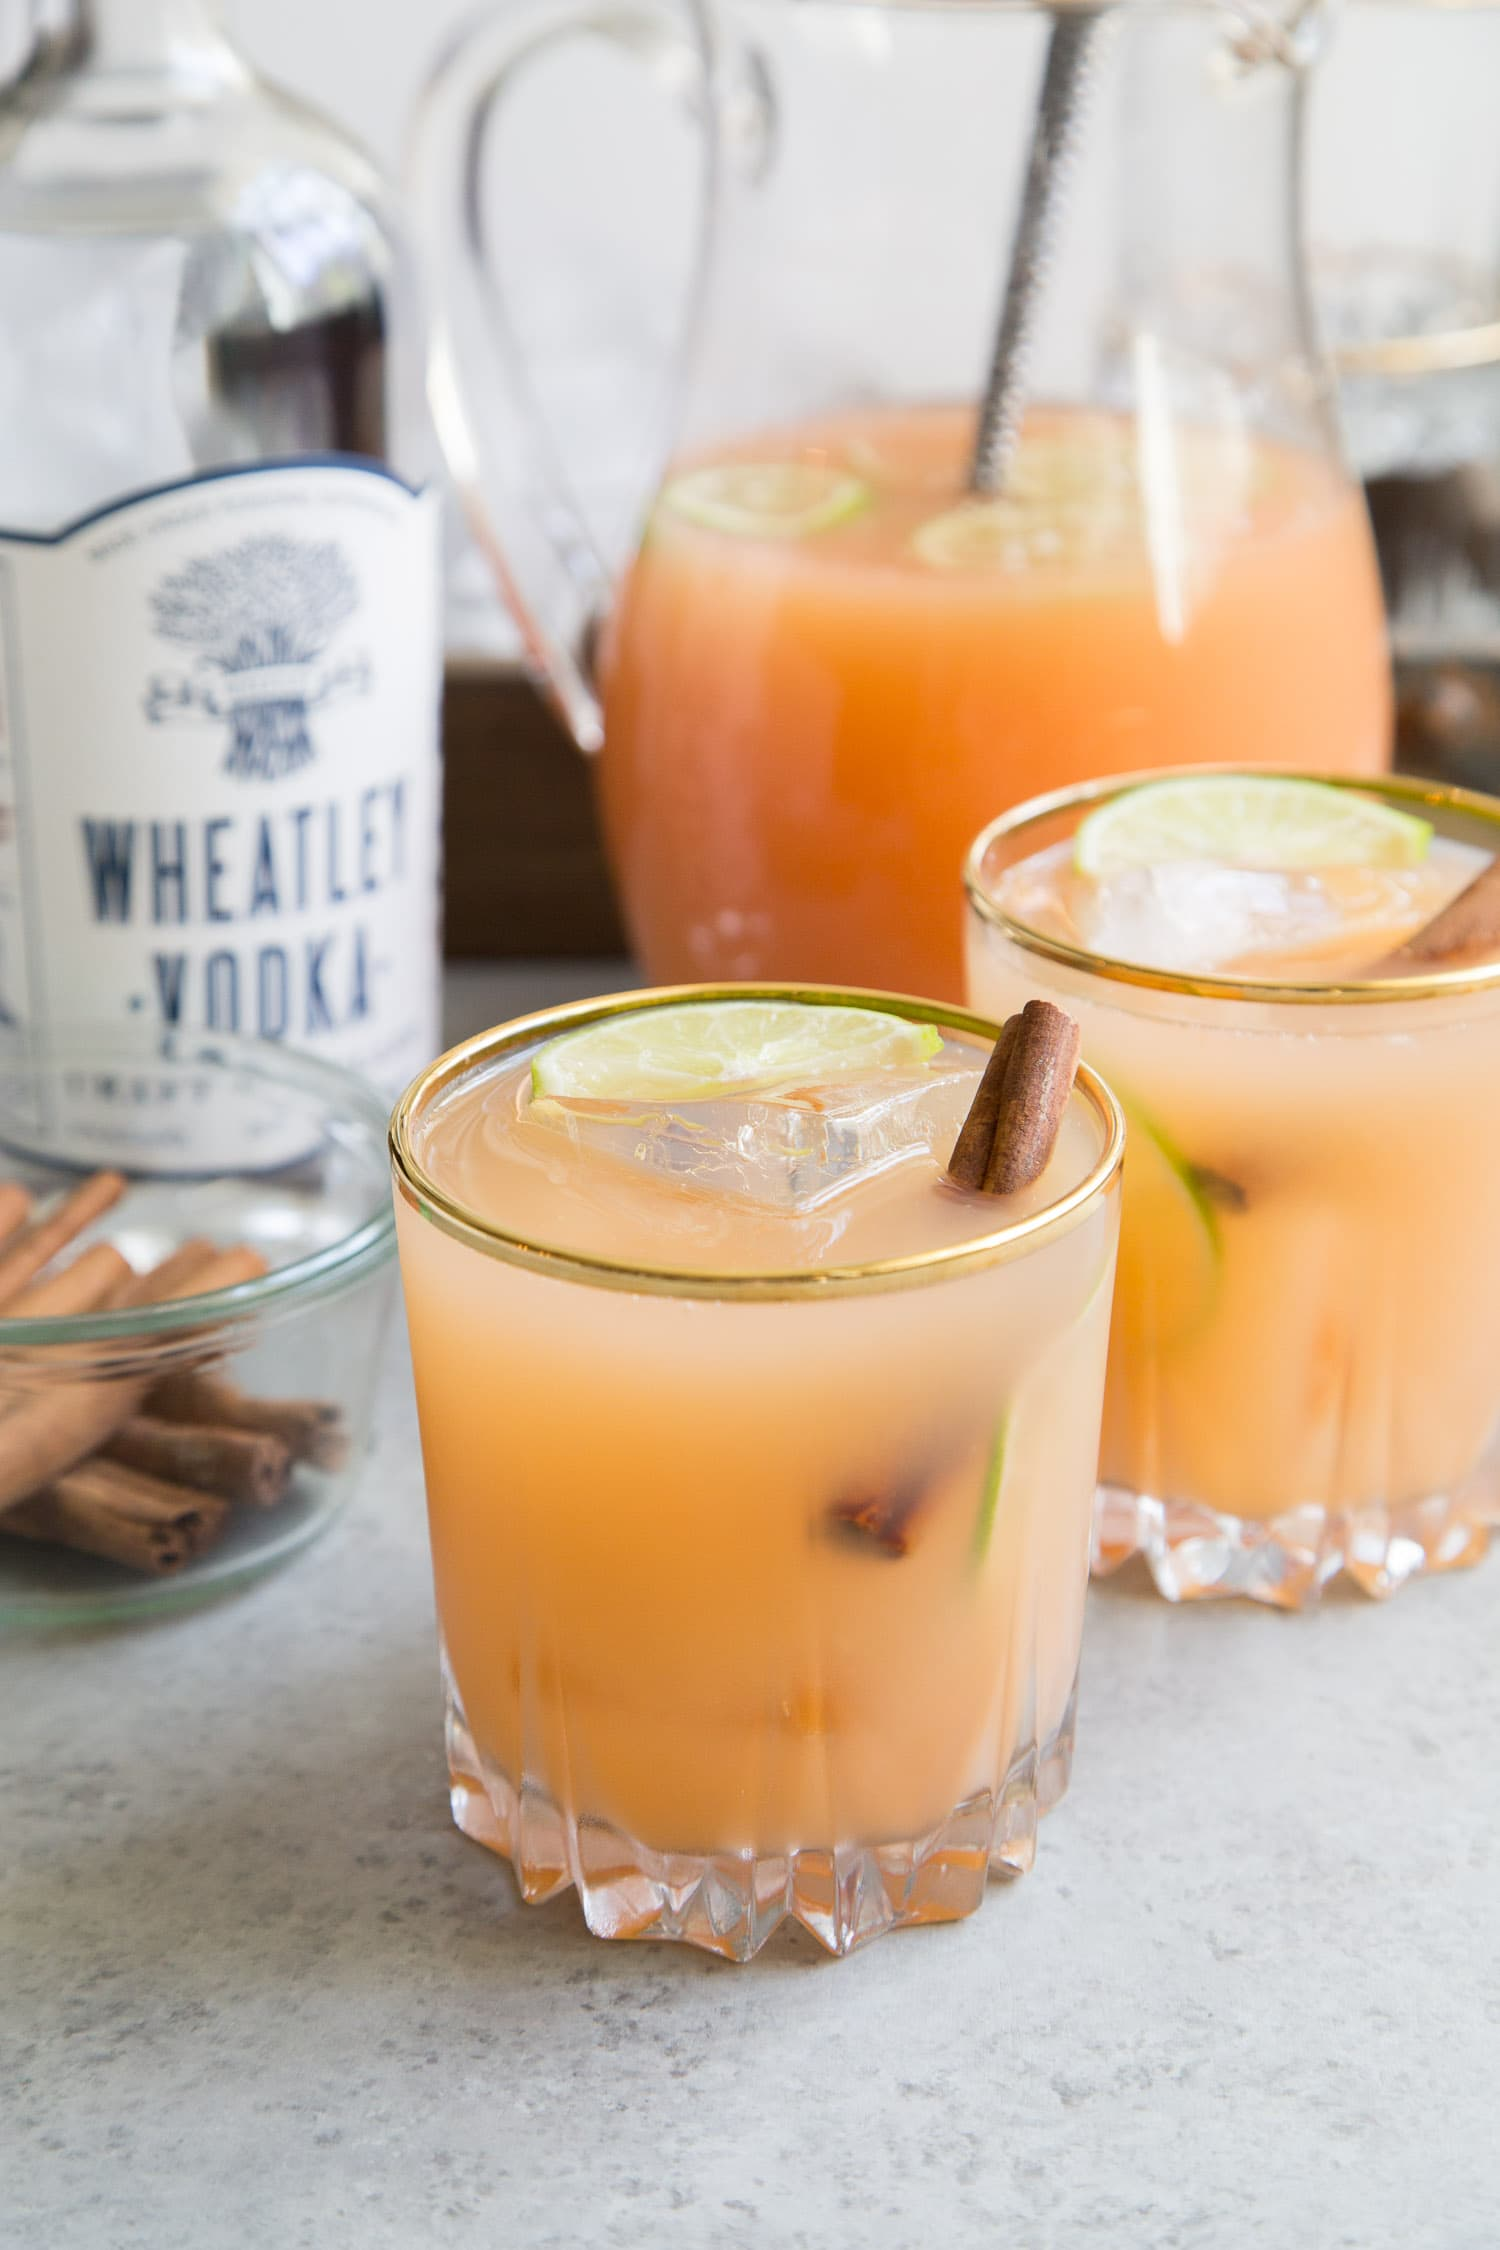 Wheatley Vodka Spiced Punch